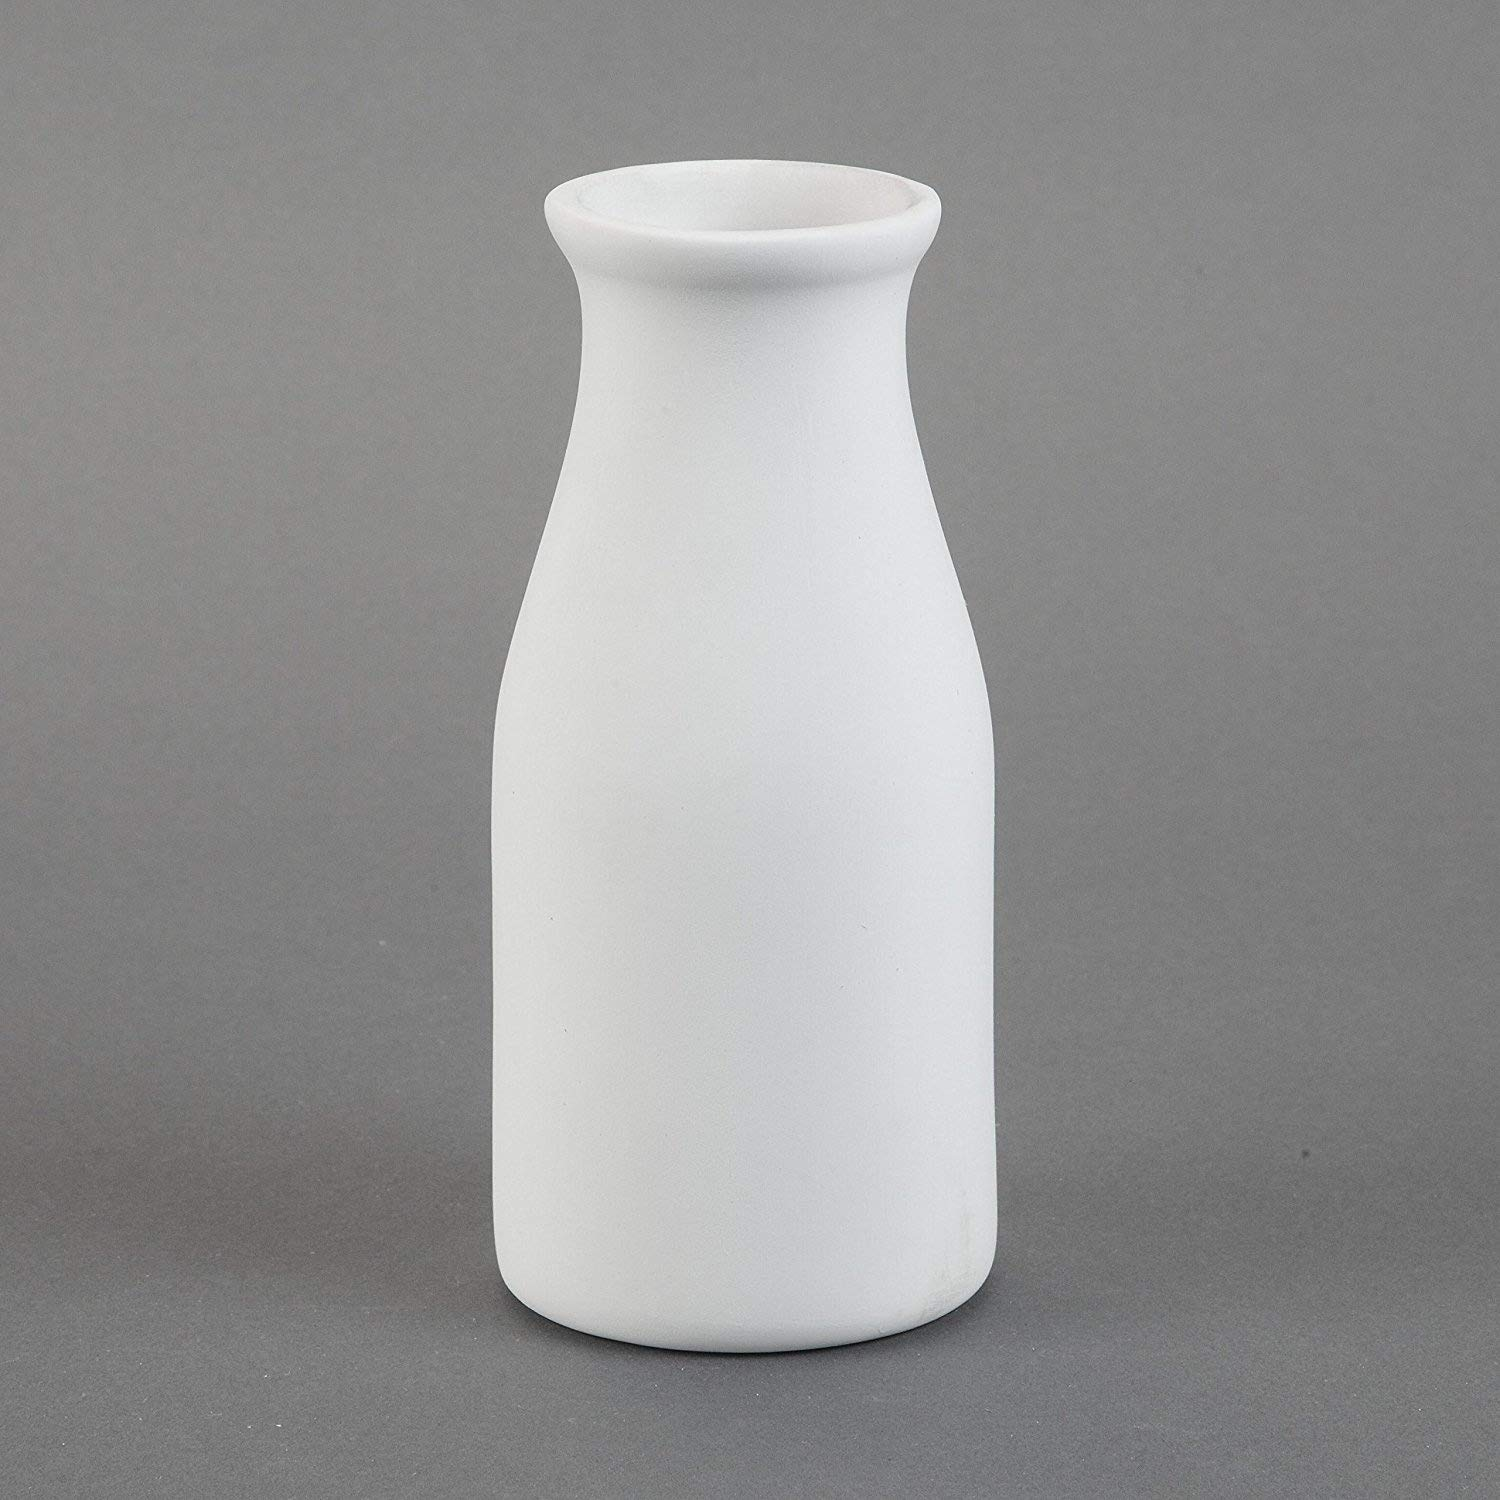 Duncan 31221 Small 3.25 Inch Milk Bottle, Case of 6 Pieces, Unfinished Ceramic Bisque, With How To Paint Your Own Pottery Booklet Duncan Enterprises